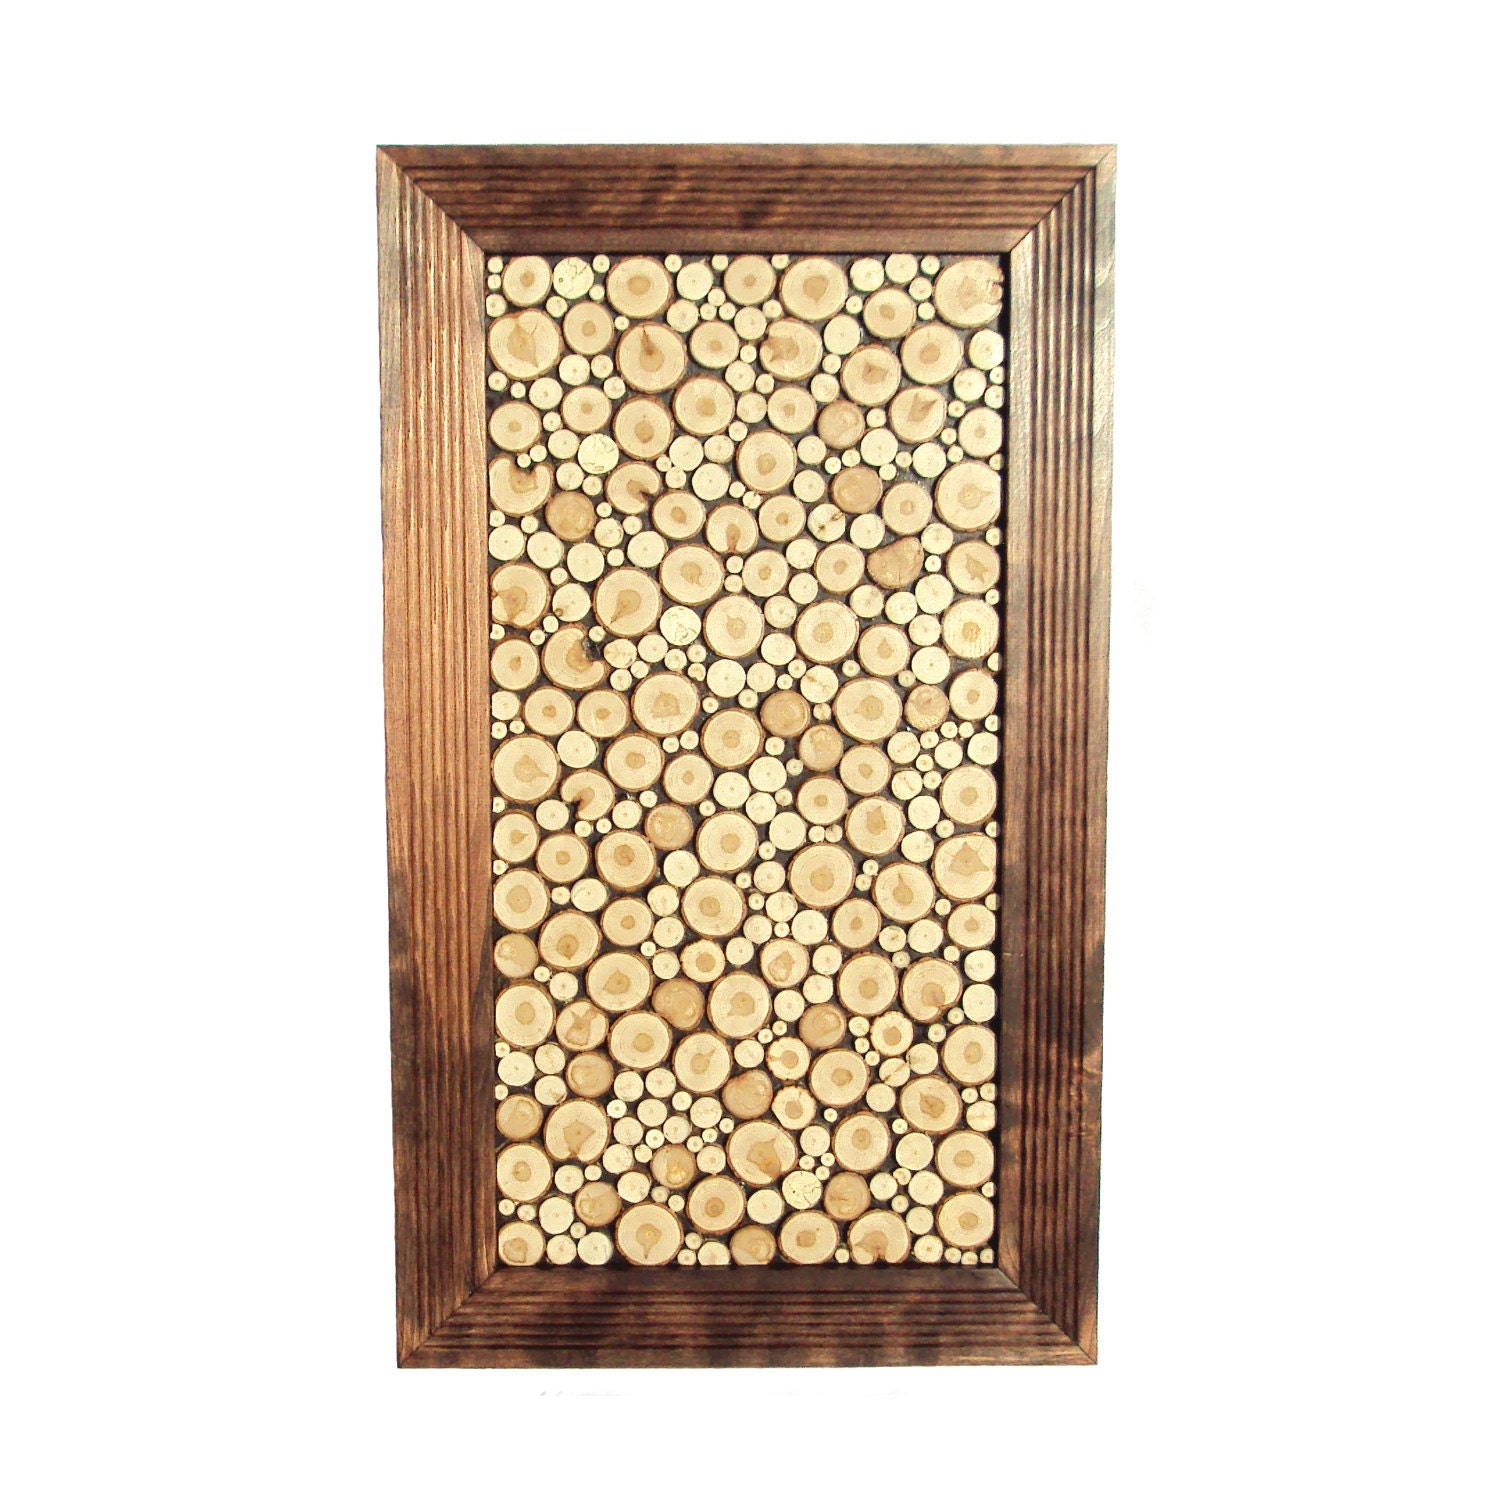 WOOD SLICE MOSAIC Wood Slice Panel Rustic Wall Art Tree